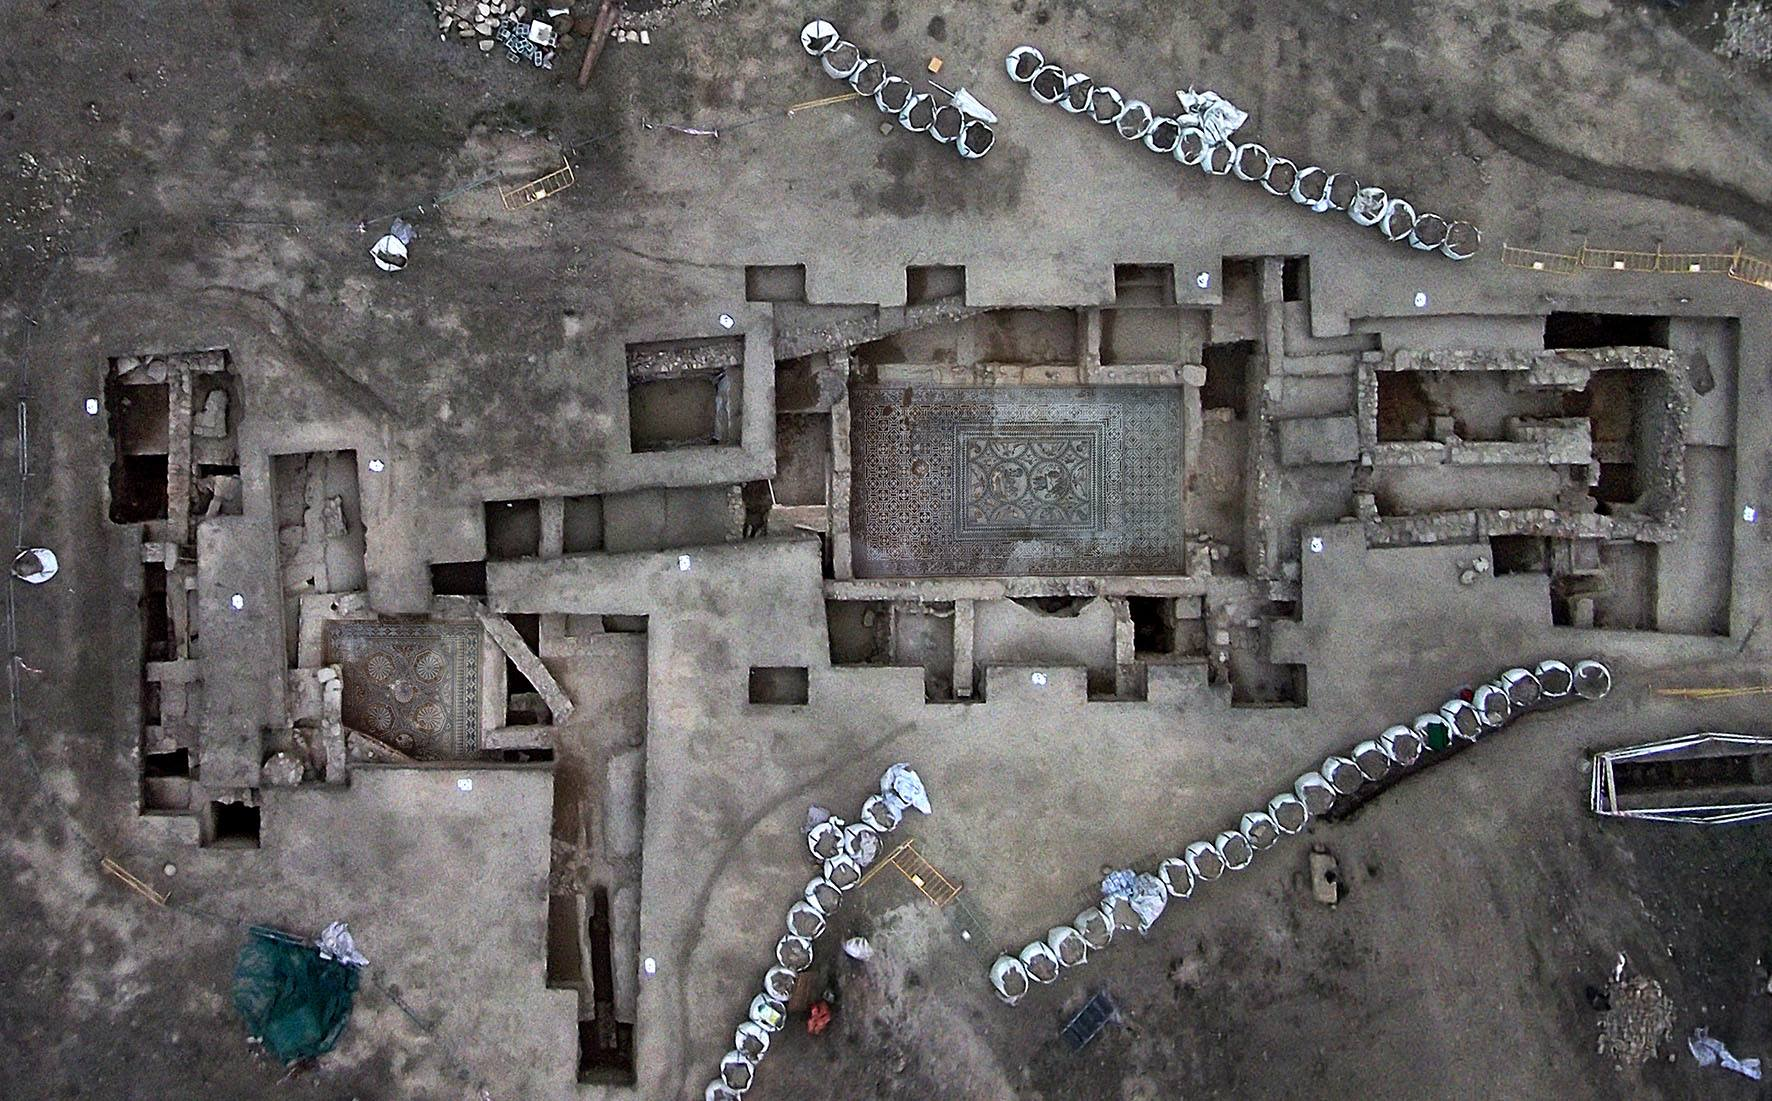 Aerial view of the Roman buildings